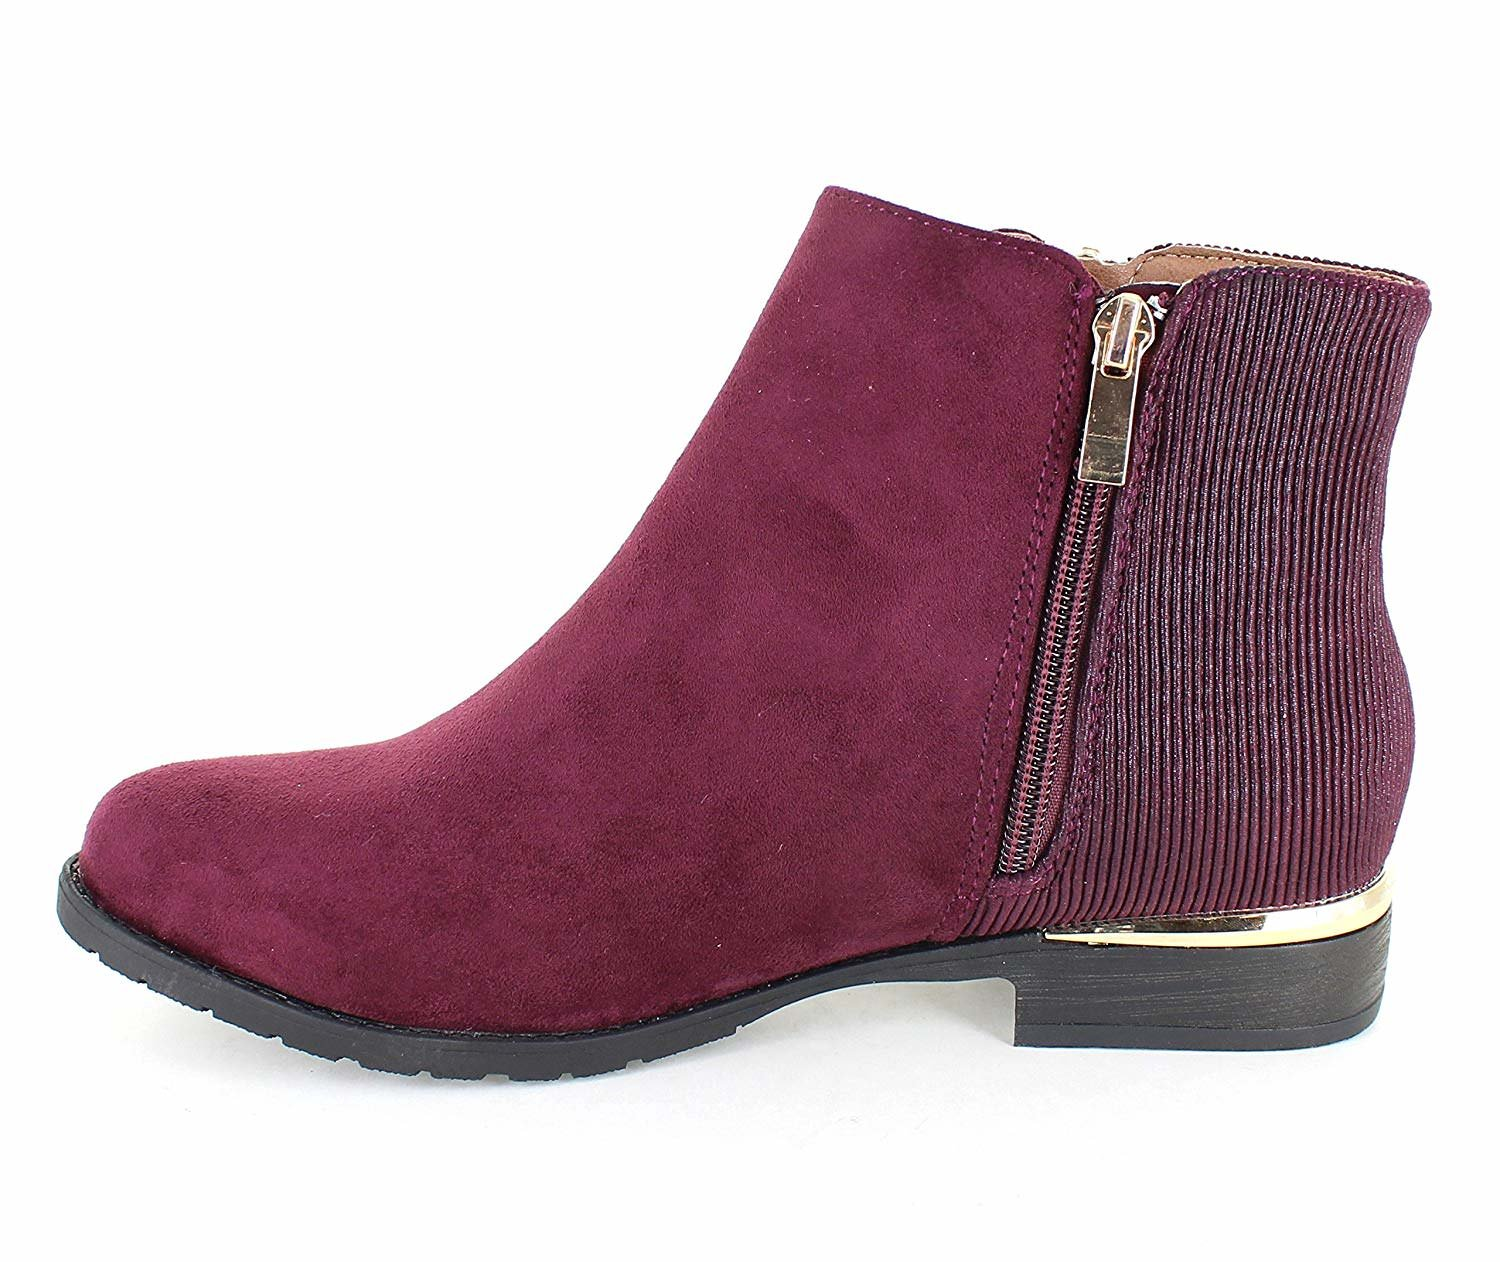 only Gold U Casual Faux Suede Gold only Trim Ankle Boots B07F9HFVHK 7.5 B(M) US|Wine 2b362c